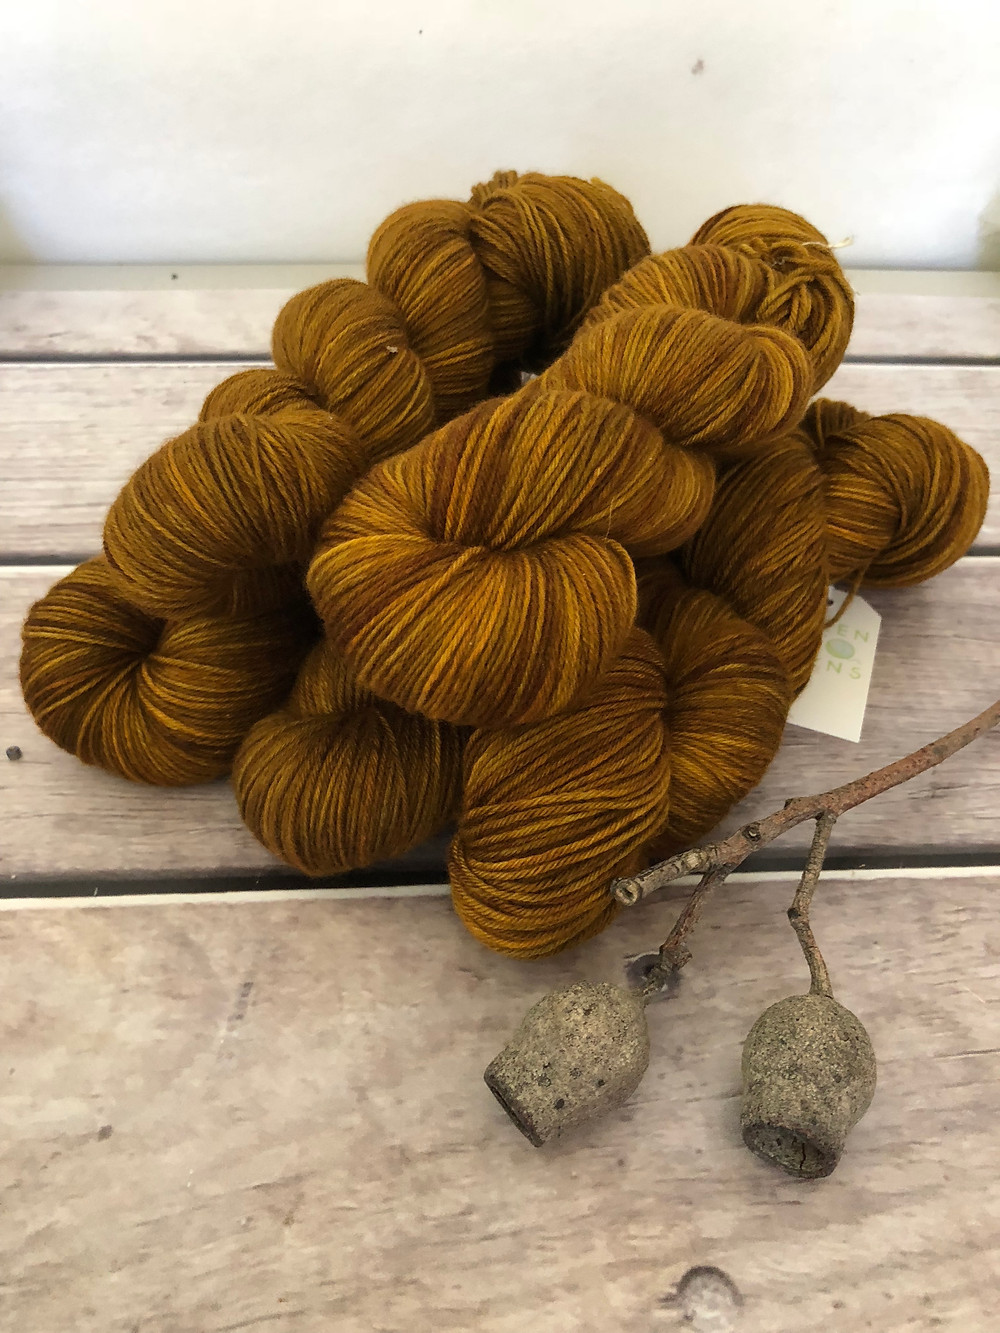 The Golden Hind limited edtion colourway on Darjeeling sock yarn